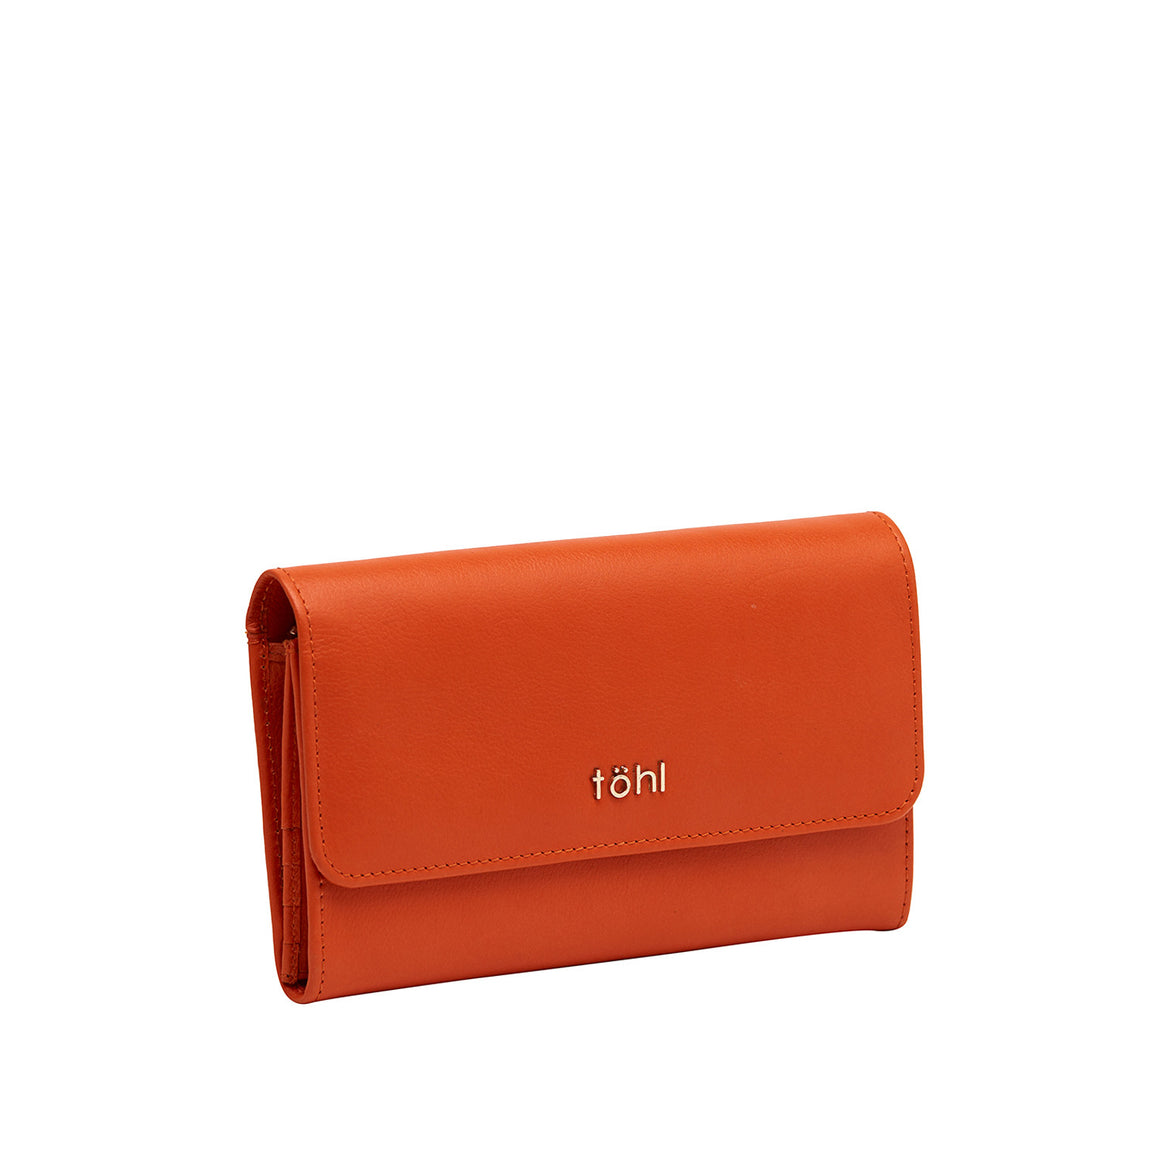 WT 0011 - TOHL ALLEN WOMEN'S FLAPOVER WALLET - ORANGE MELON